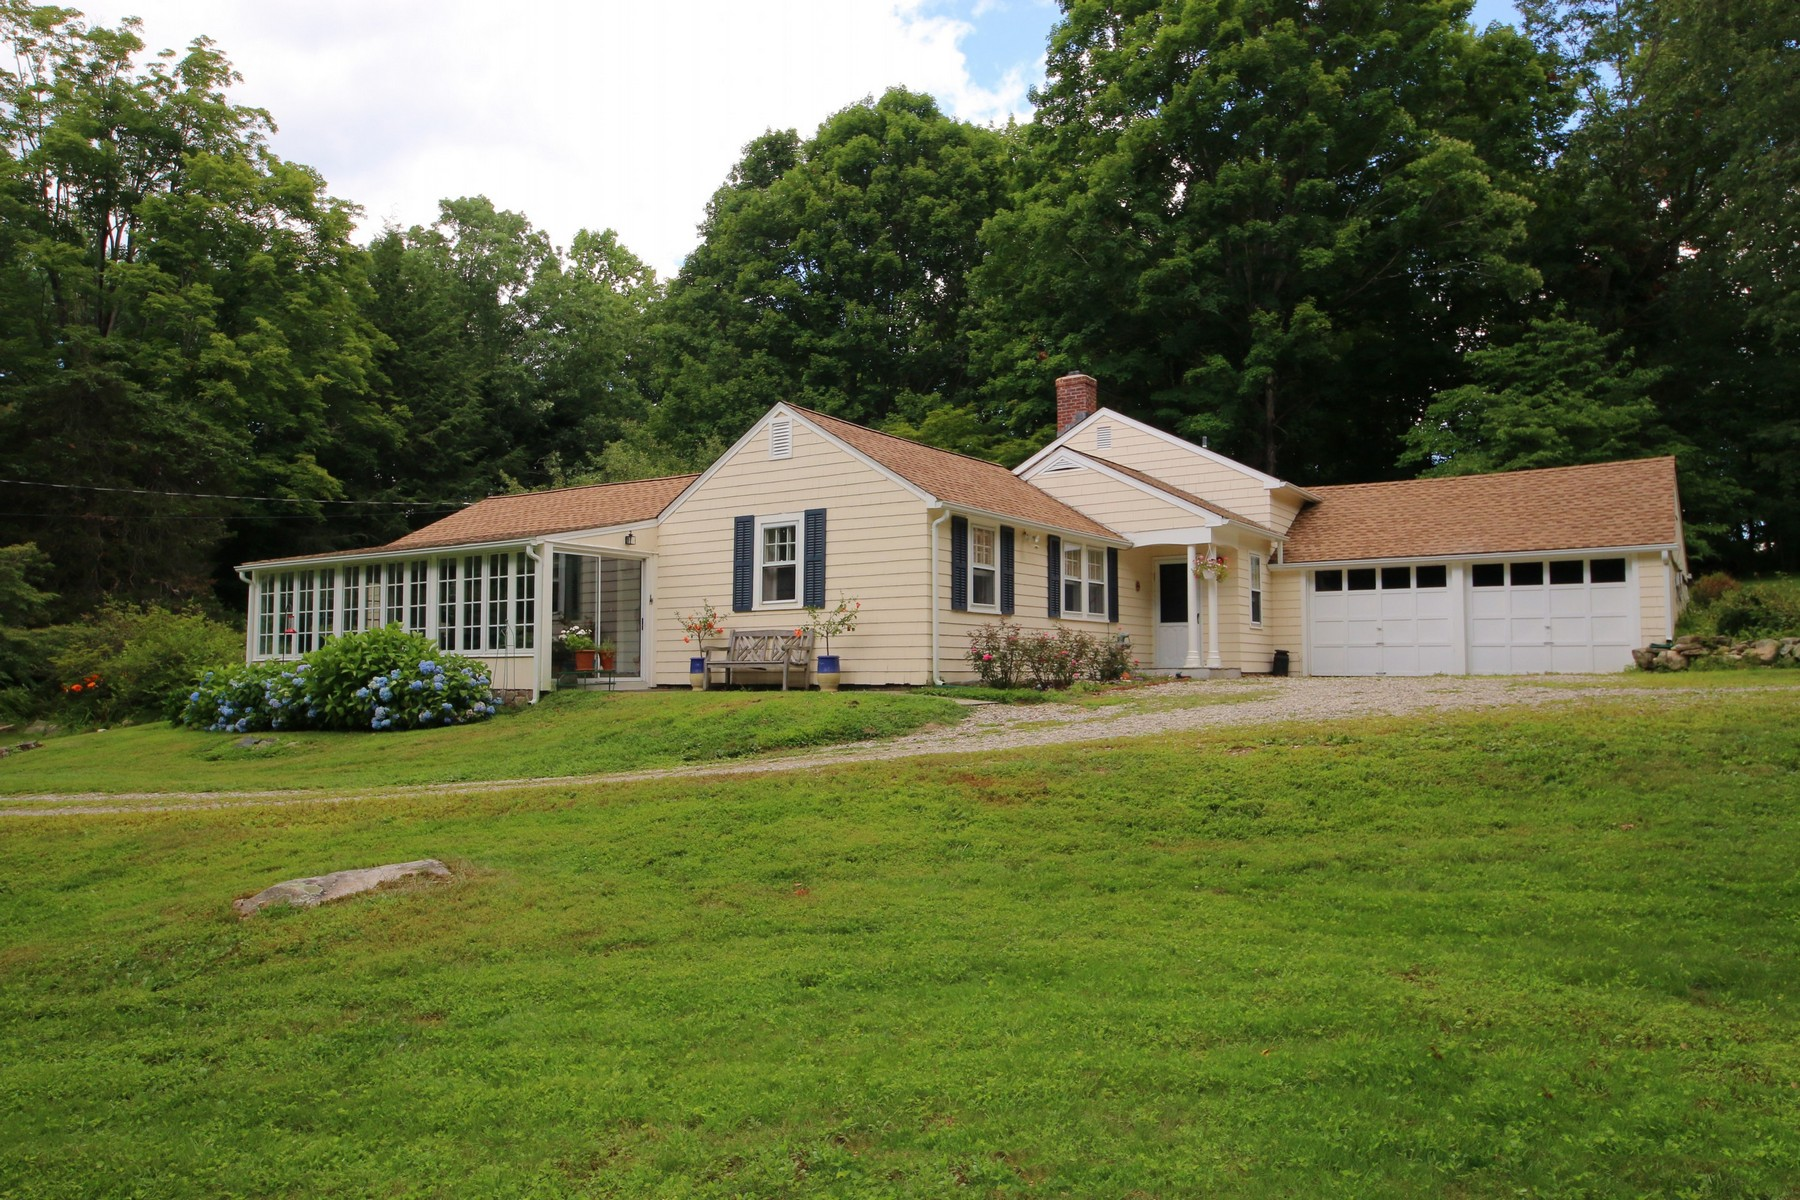 Single Family Home for Sale at Picture Perfect Rambling Cottage 82 Marchant Road Redding, Connecticut 06896 United States